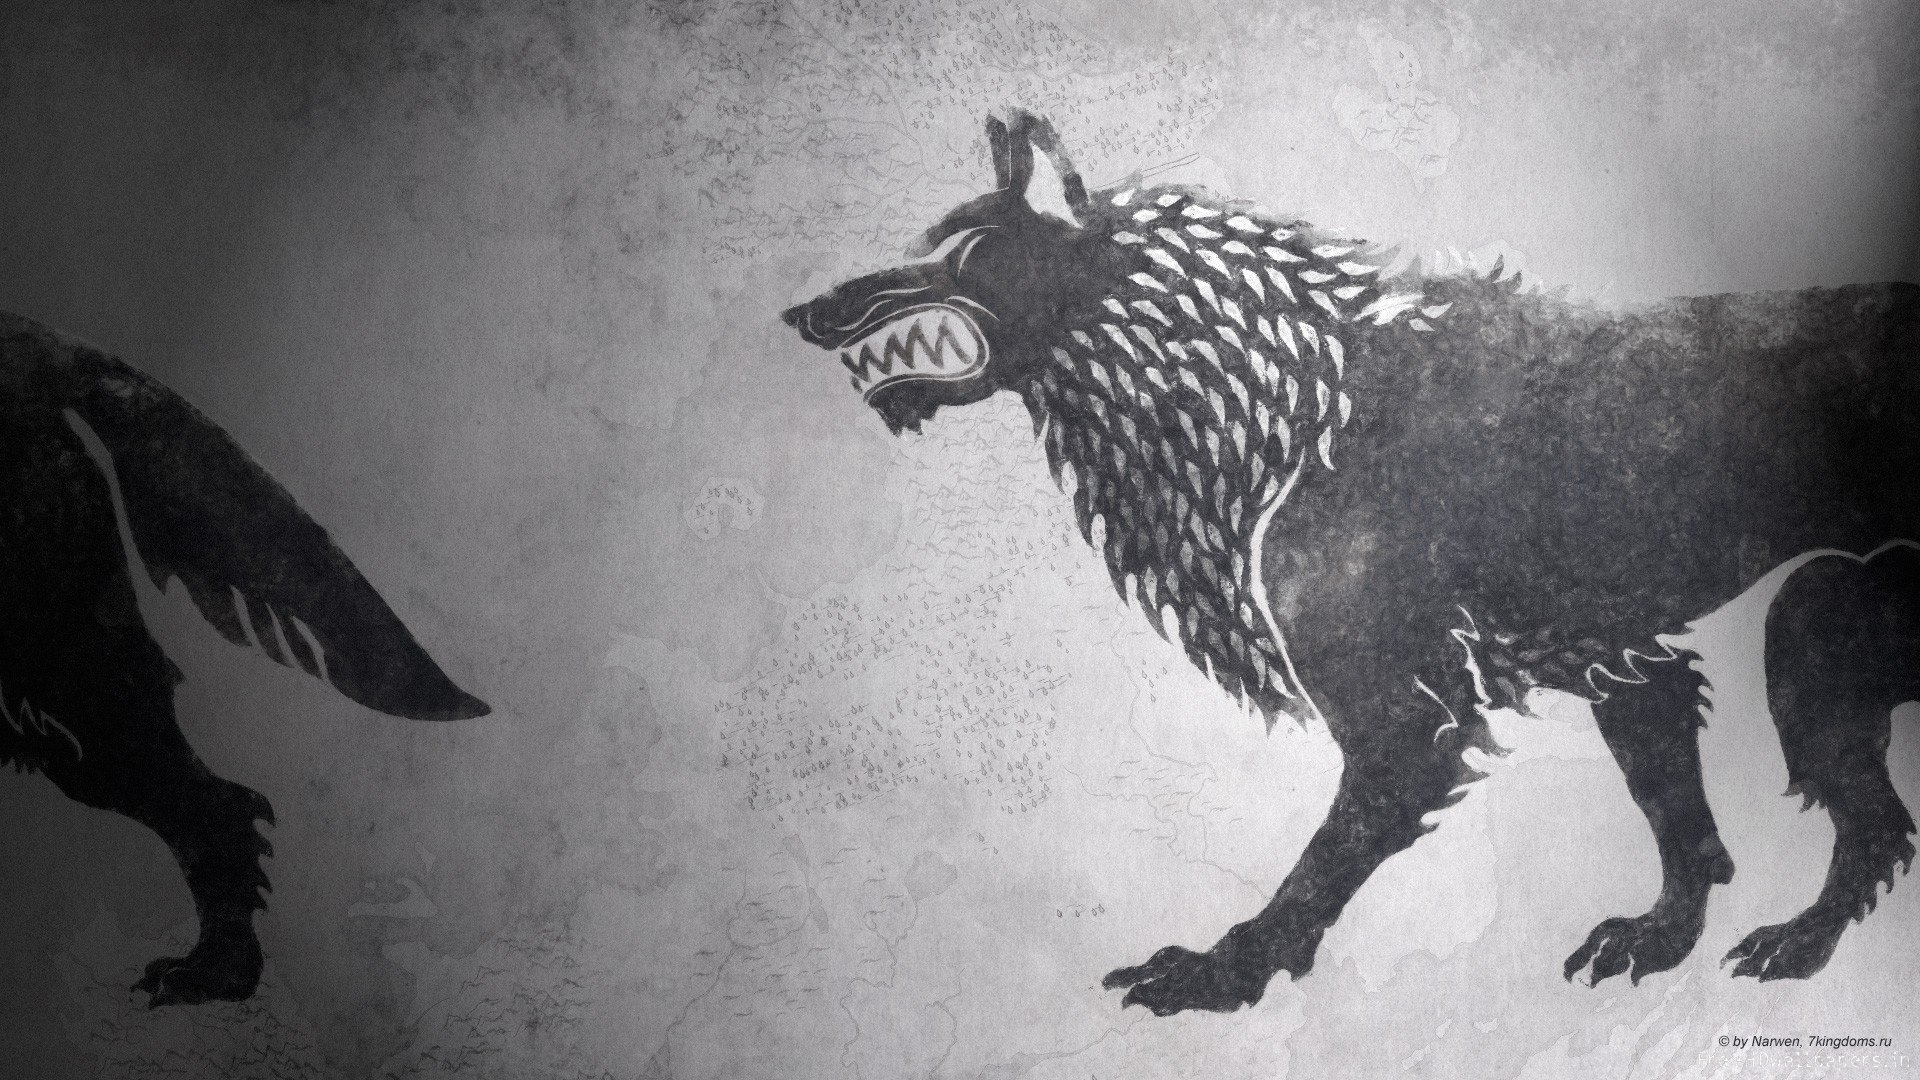 Game Of Thrones Stark Wallpapers For Android On Wallpaper - Game Of Thrones Wallpaper Stark - HD Wallpaper